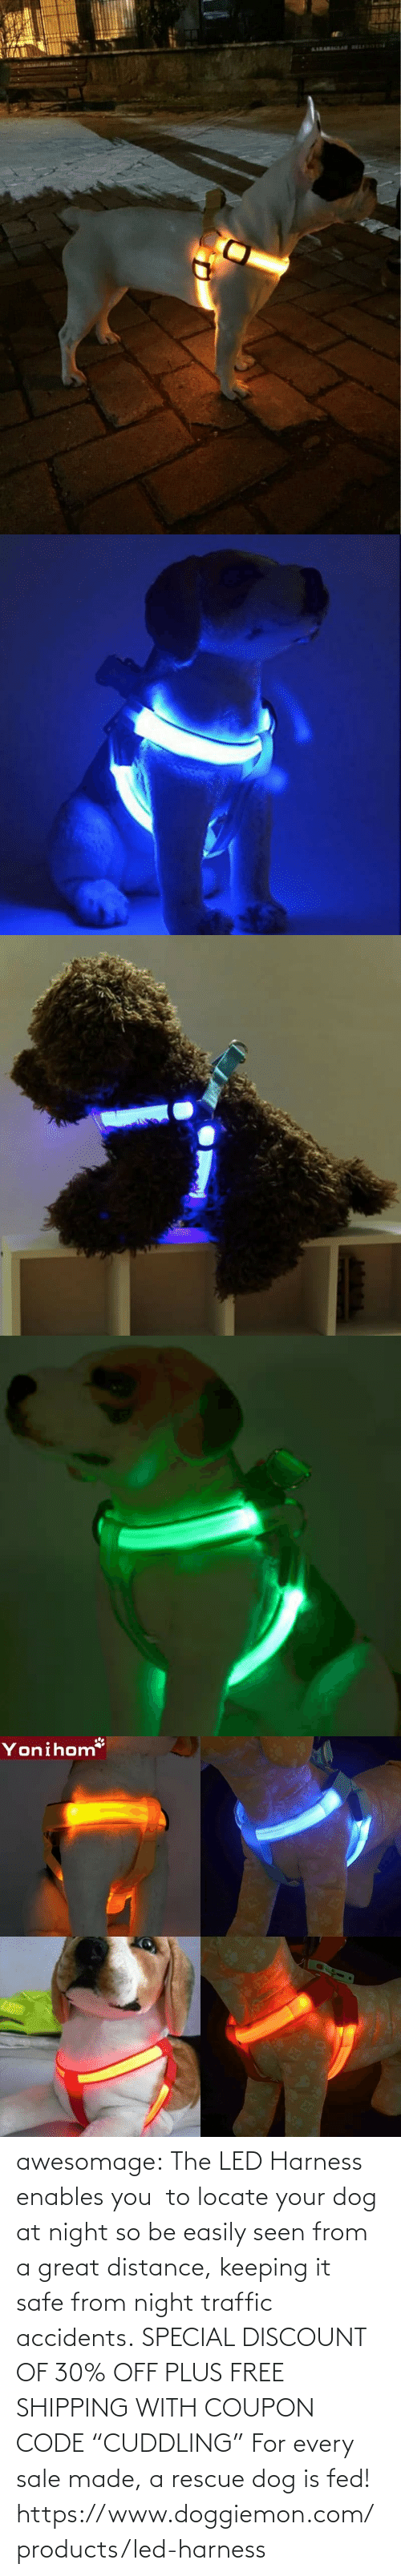 "Traffic: awesomage:   The LED Harness enables you  to locate your dog at night so be easily seen from a great distance, keeping it safe from night traffic accidents. SPECIAL DISCOUNT OF 30% OFF PLUS FREE SHIPPING WITH COUPON CODE ""CUDDLING"" For every sale made, a rescue dog is fed!   https://www.doggiemon.com/products/led-harness"